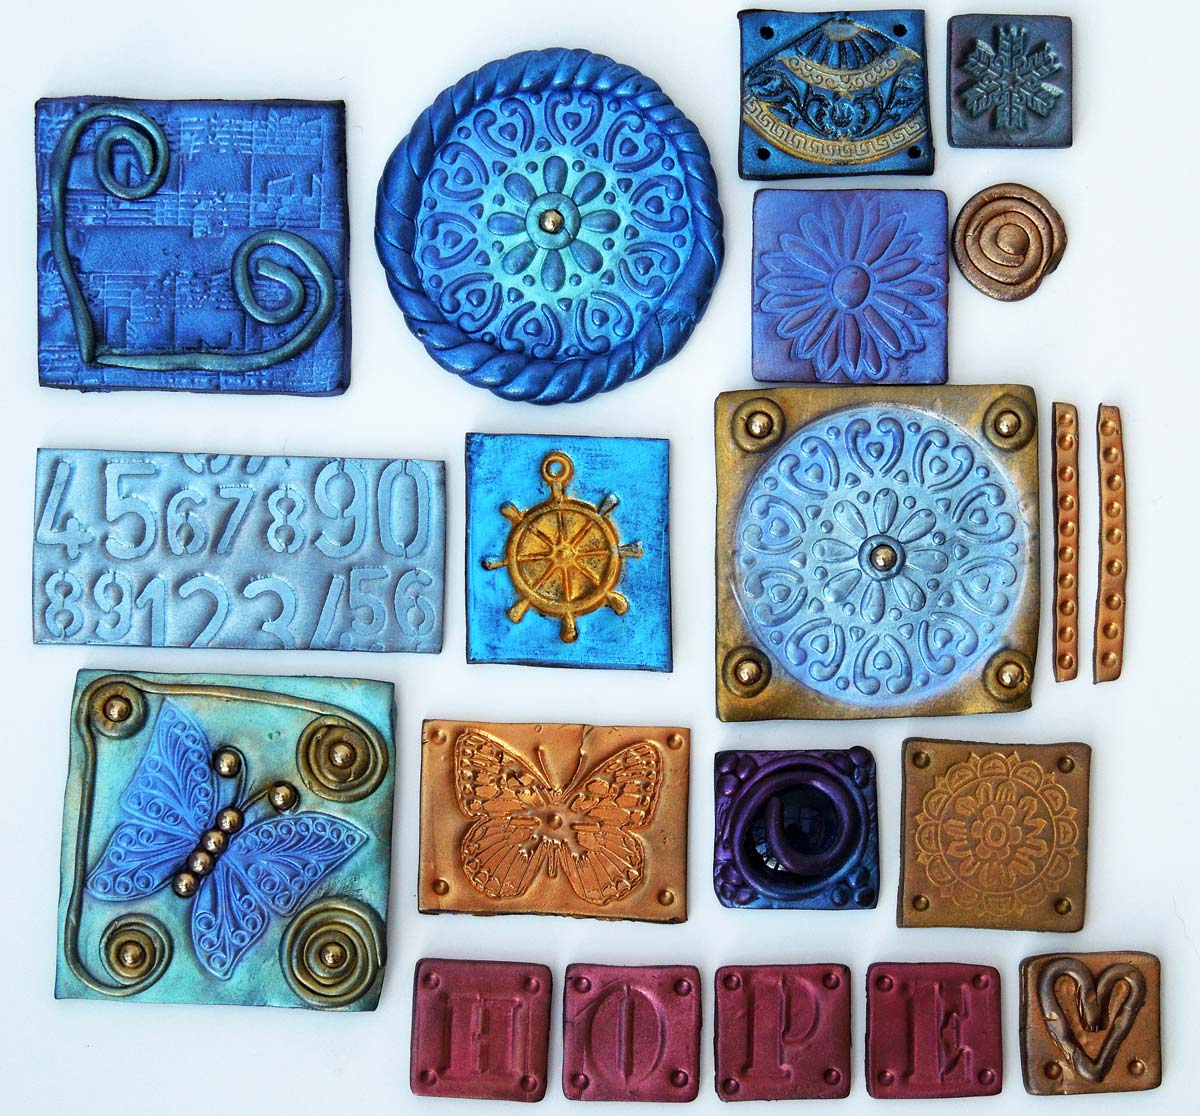 Just Search For Polymer Clay Tiles Or Mosaics I Plan To Use Mine On A Journal Cover But Need Make More It Completely